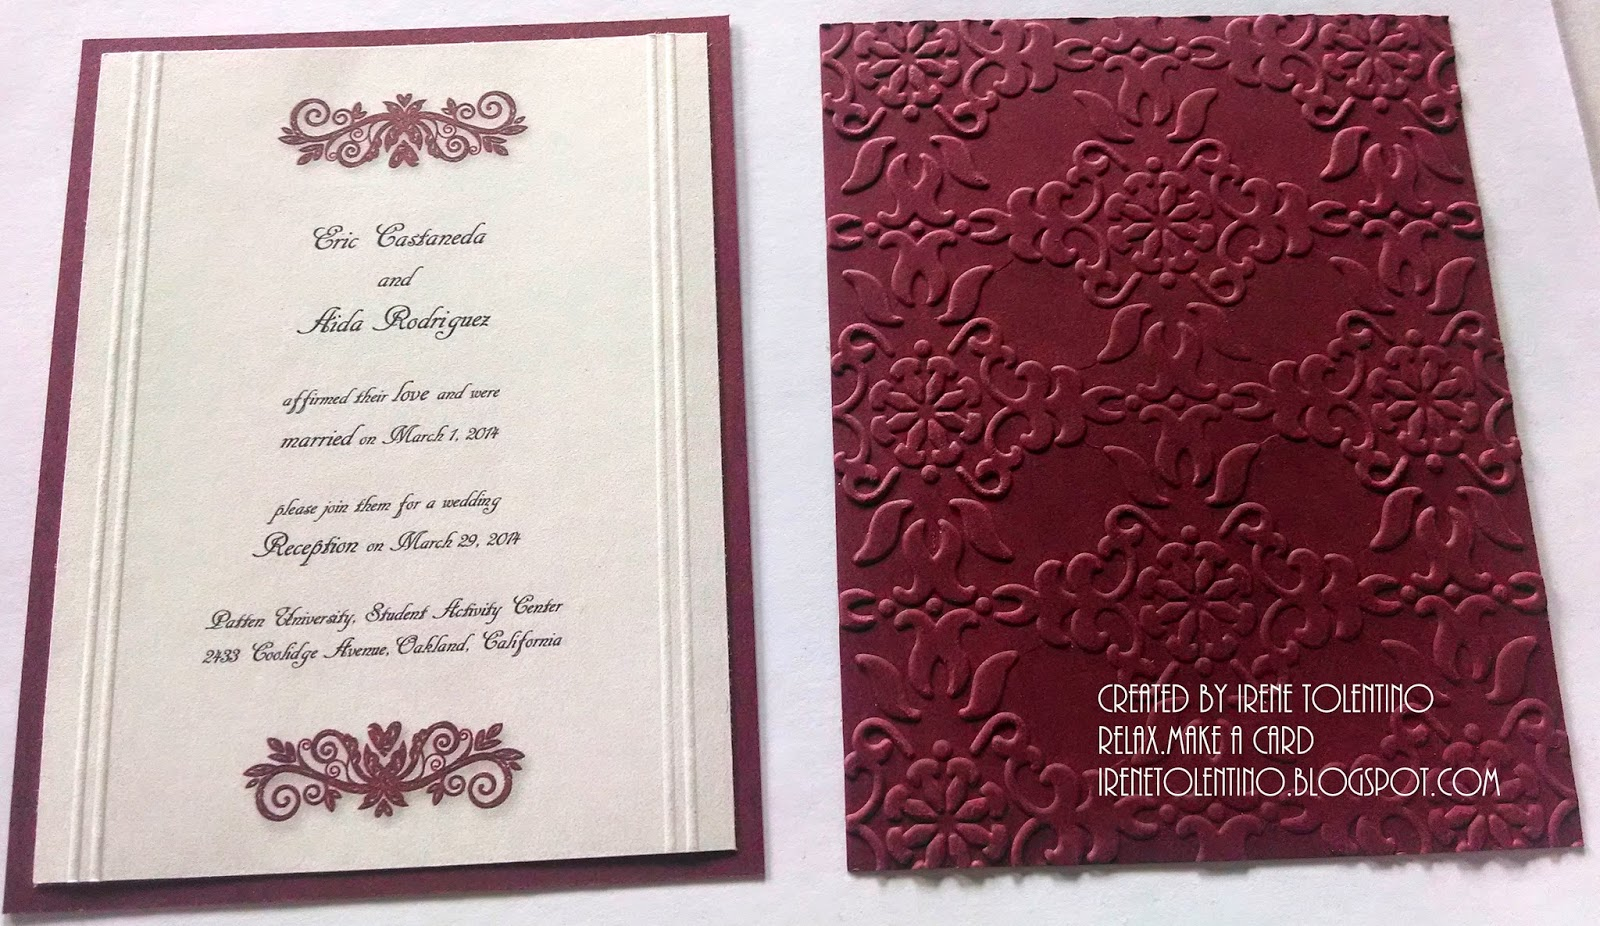 Relax. Make a Card: Burgundy Wedding Reception Invitations